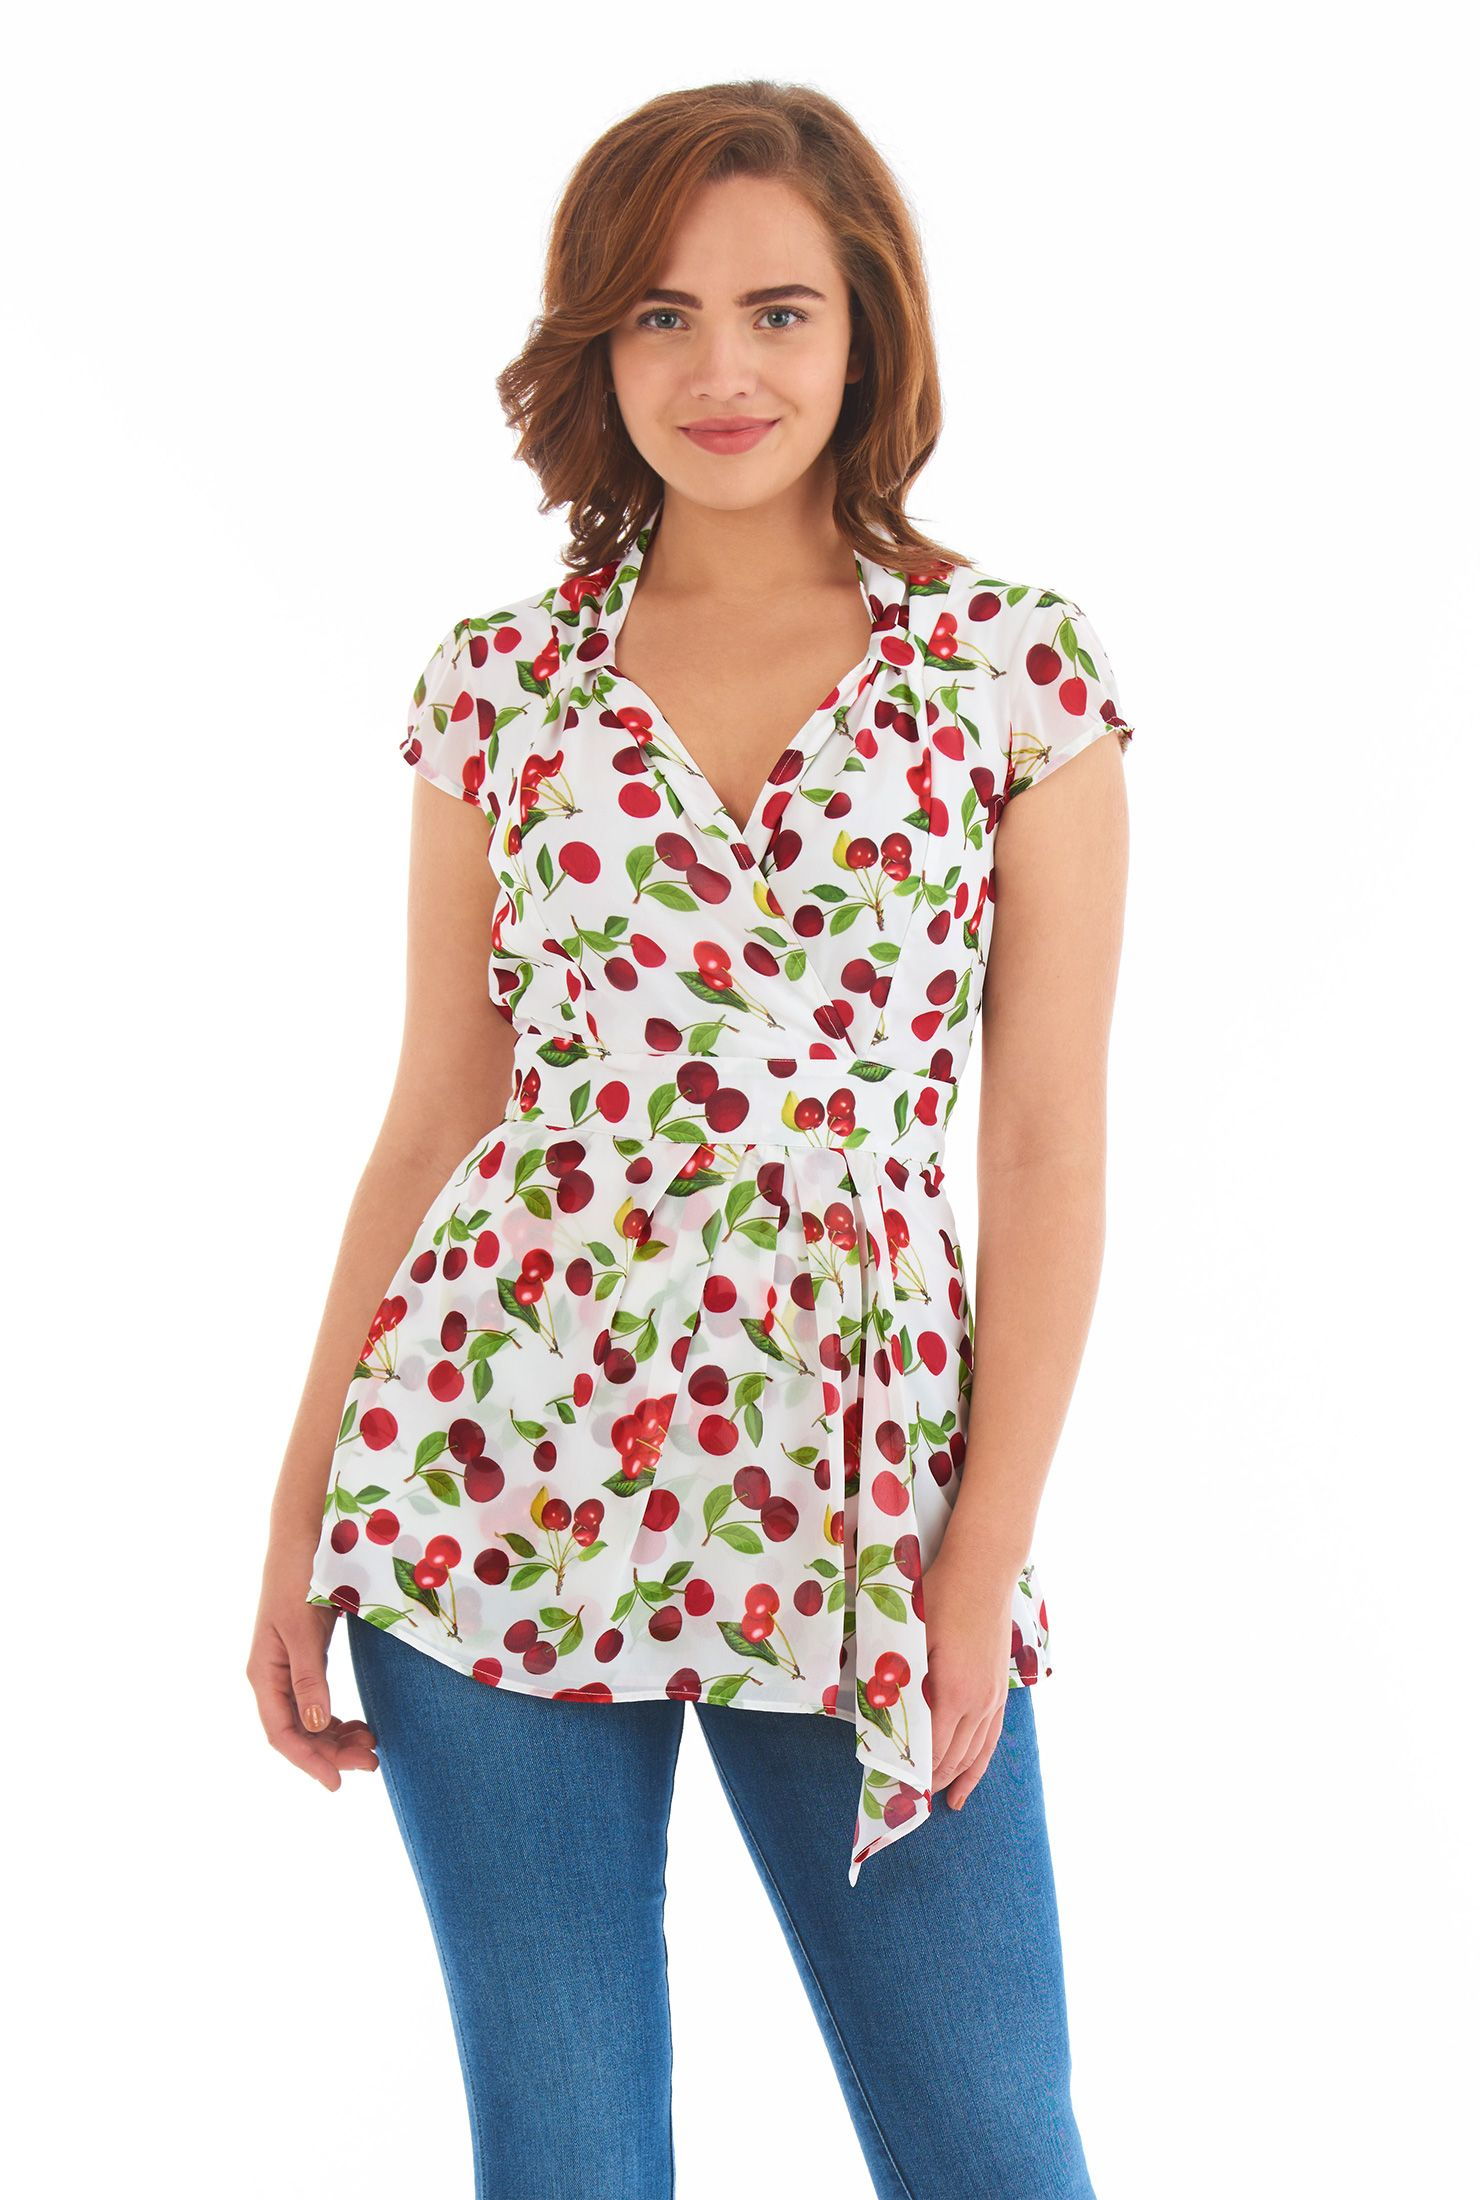 Our cherry print geor te top lets the draped hem with a feminine construction of the faux wrap stand out further